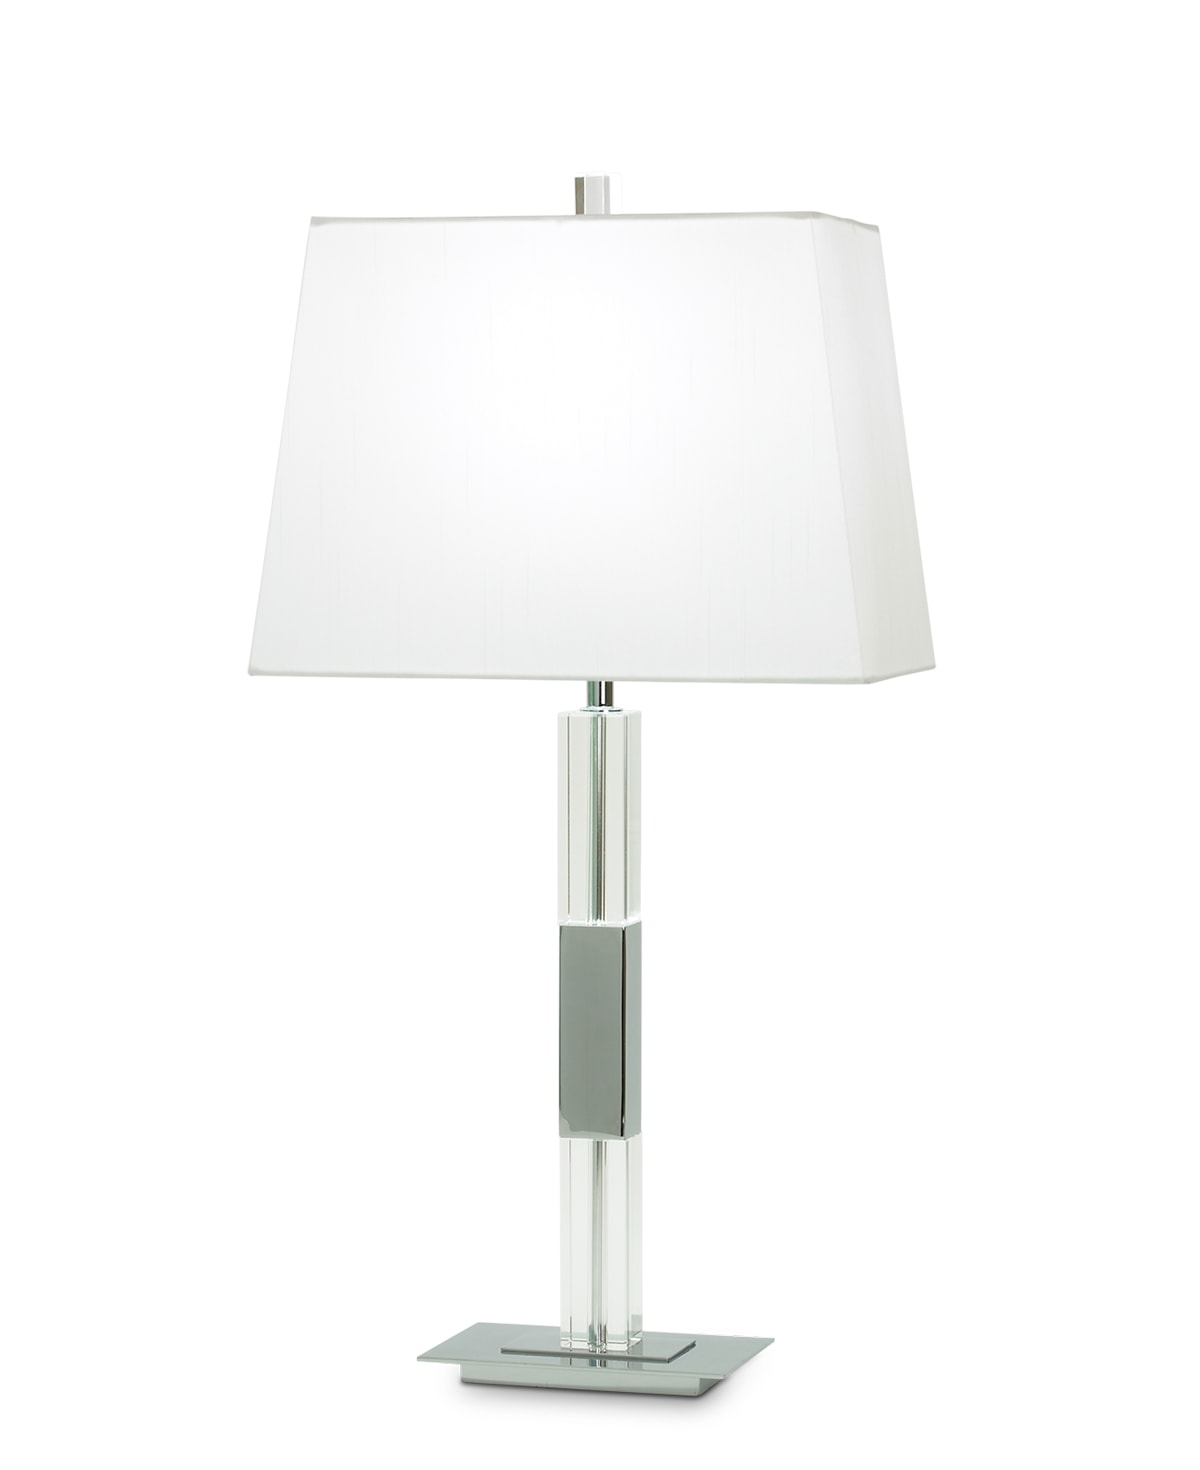 FlowDecor Moreno Table Lamp in crystal and metal with chrome finish and white cotton tapered rectangular shade (# 3156)